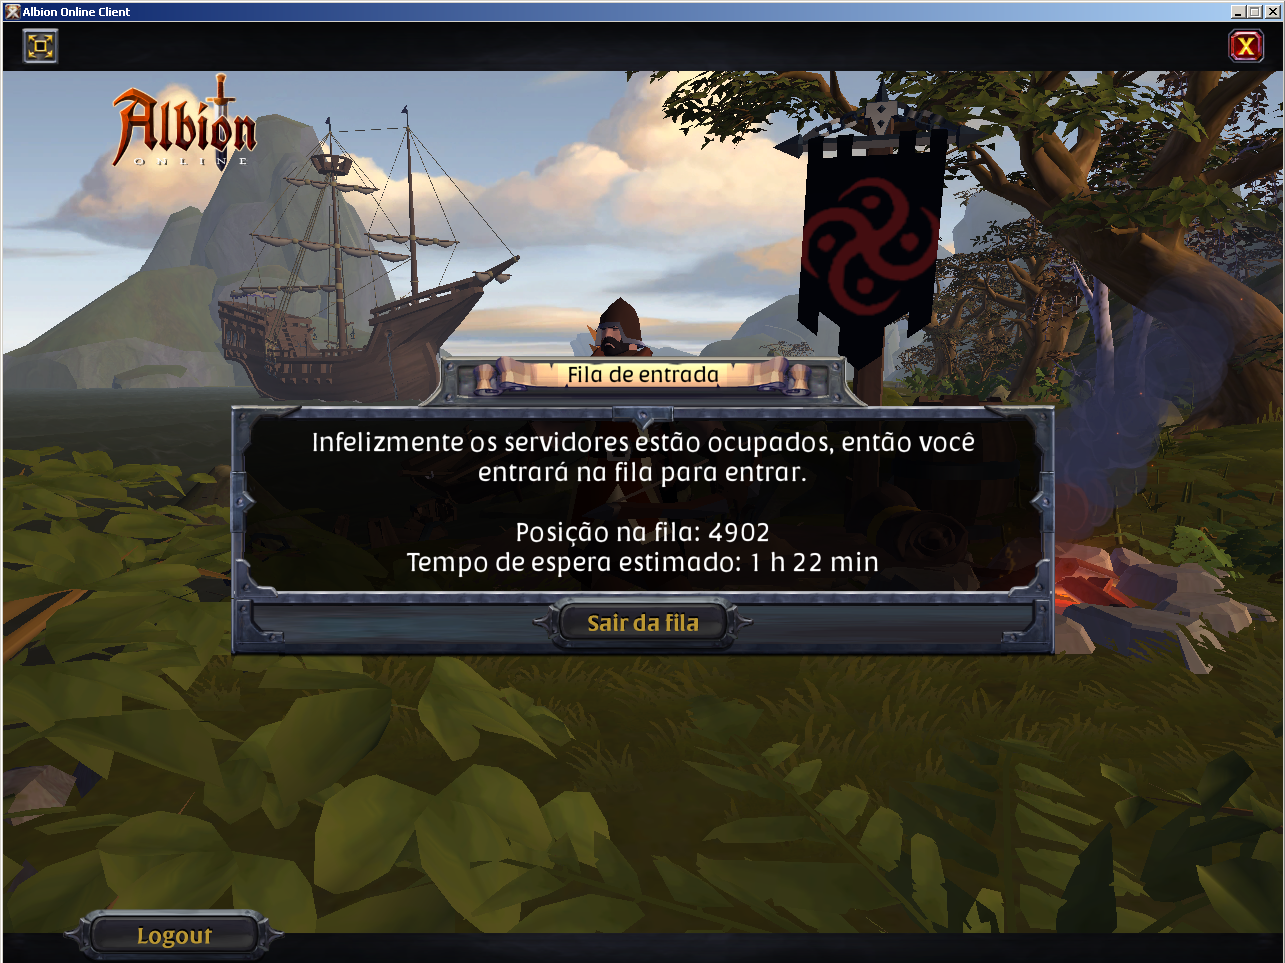 Queue waiting more than 1 hour to log in - Bugs - Albion Online Forum